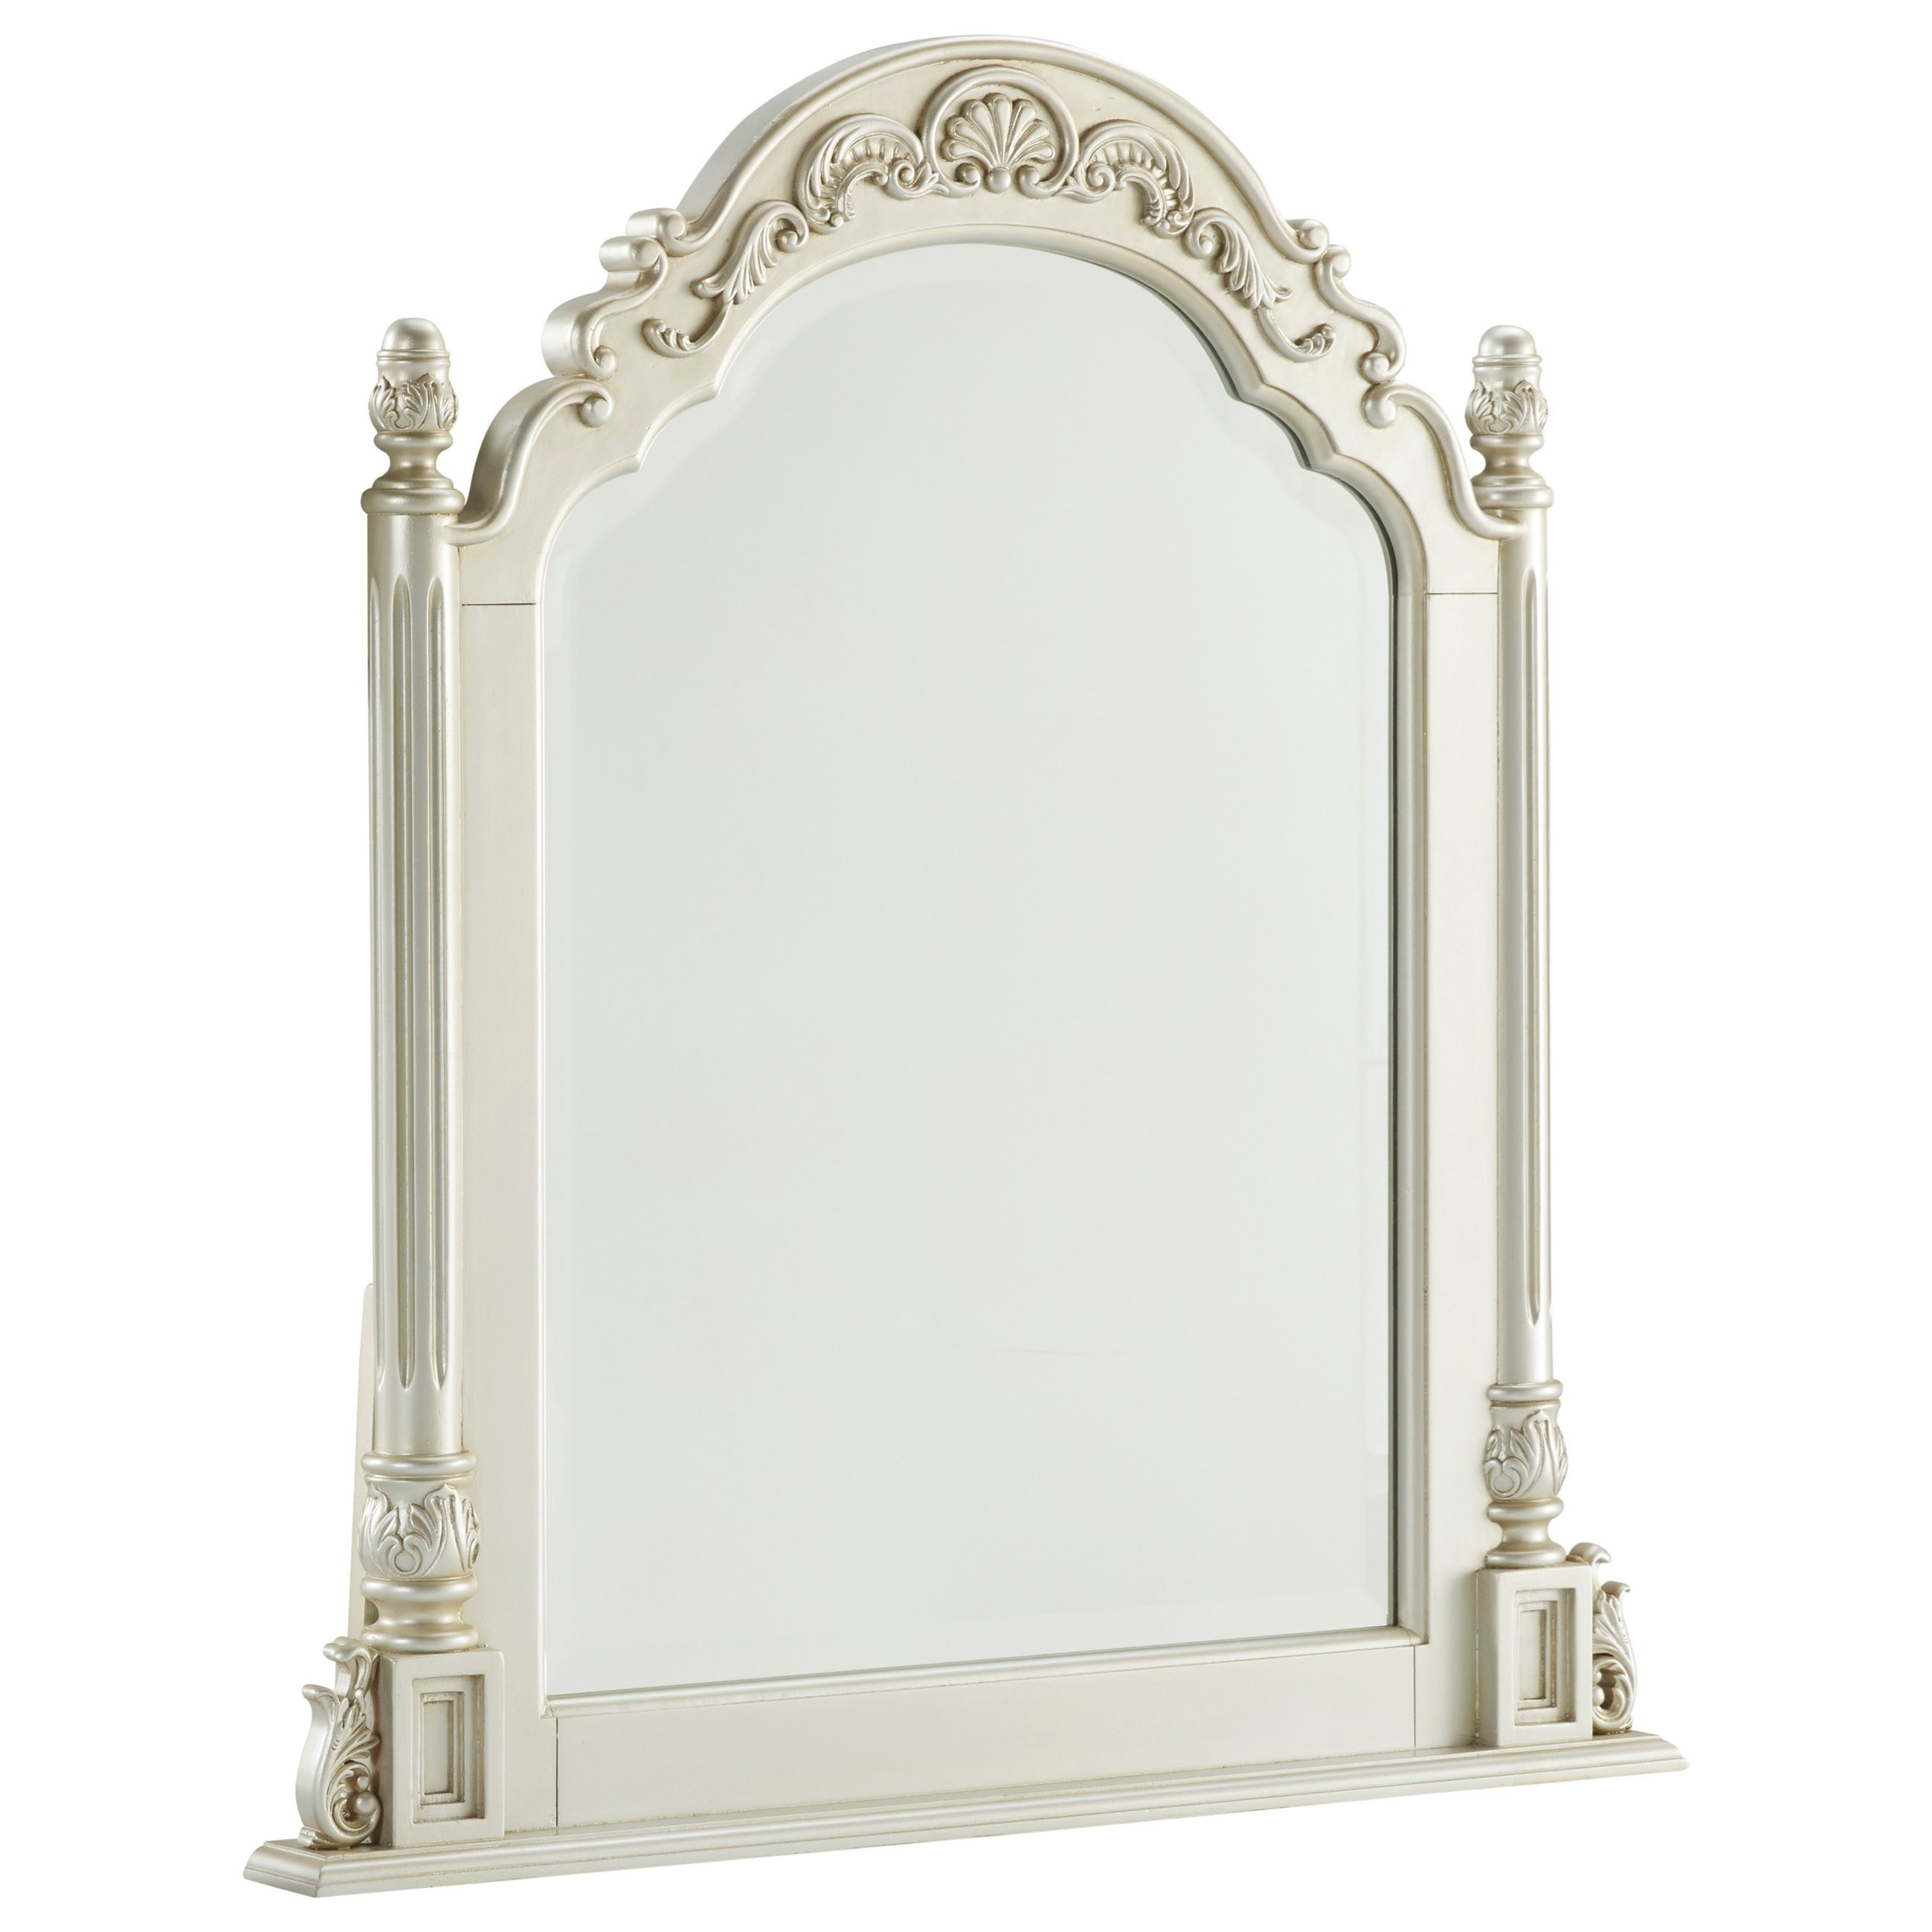 Signature Design by Ashley Cassimore Vanity Mirror - Item Number: B750-25